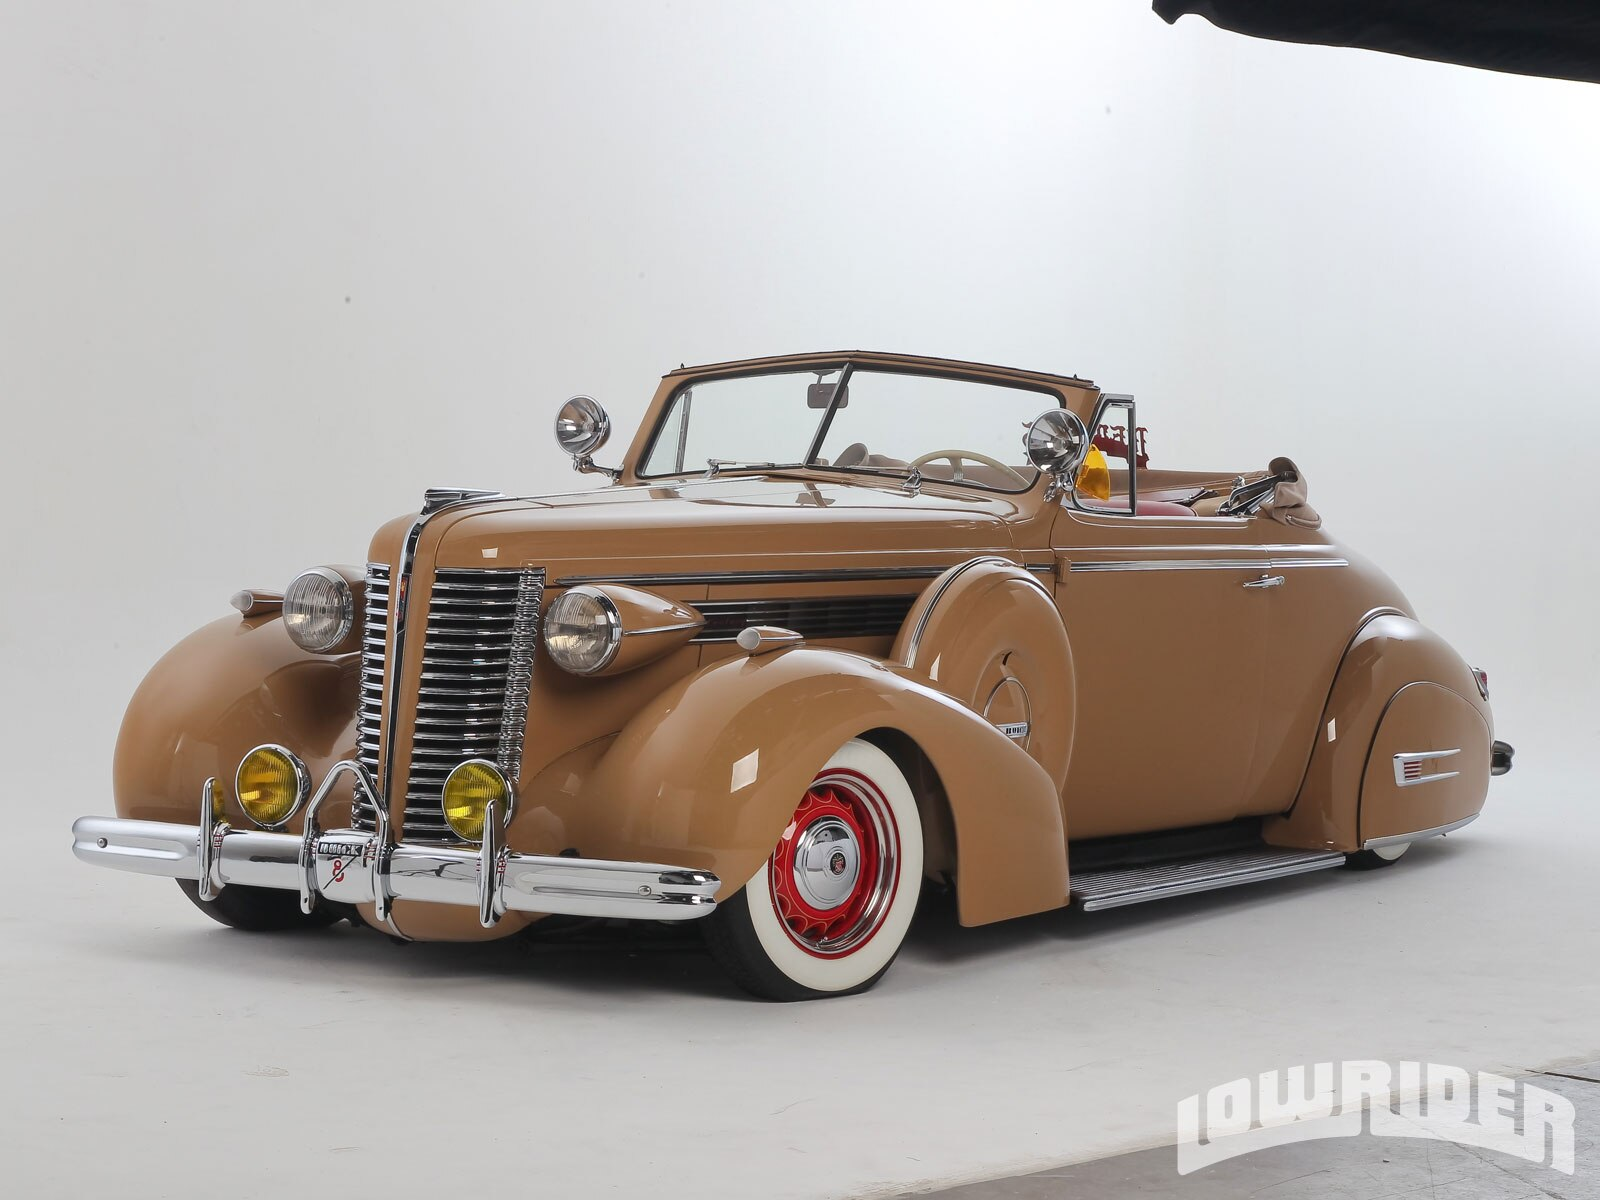 120316 further 1209 Lrmp 1938 Buick Convertible moreover Chrysler Airflow purzuit as well 3 6l V6 Engine Question 856386 2 also The Mopar Era 1932 1933 1934 Dodge. on chrysler straight 6 engine